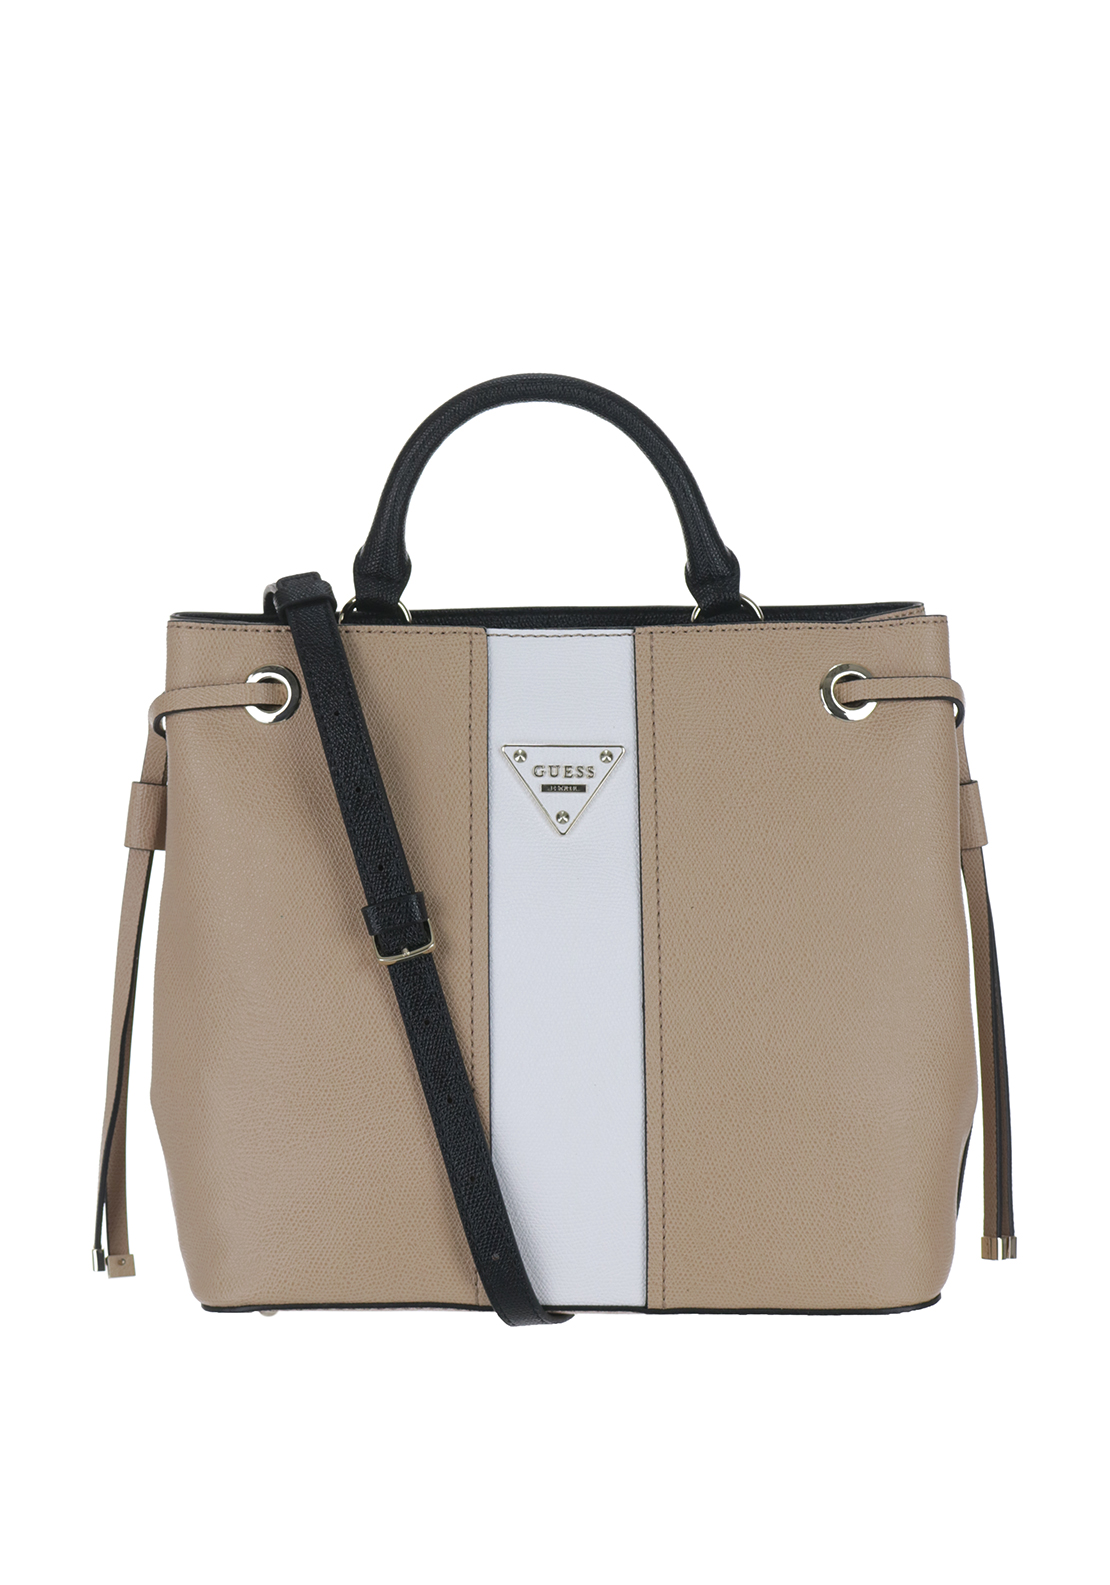 Guess Cooper Tote Shopper Bag, Tan